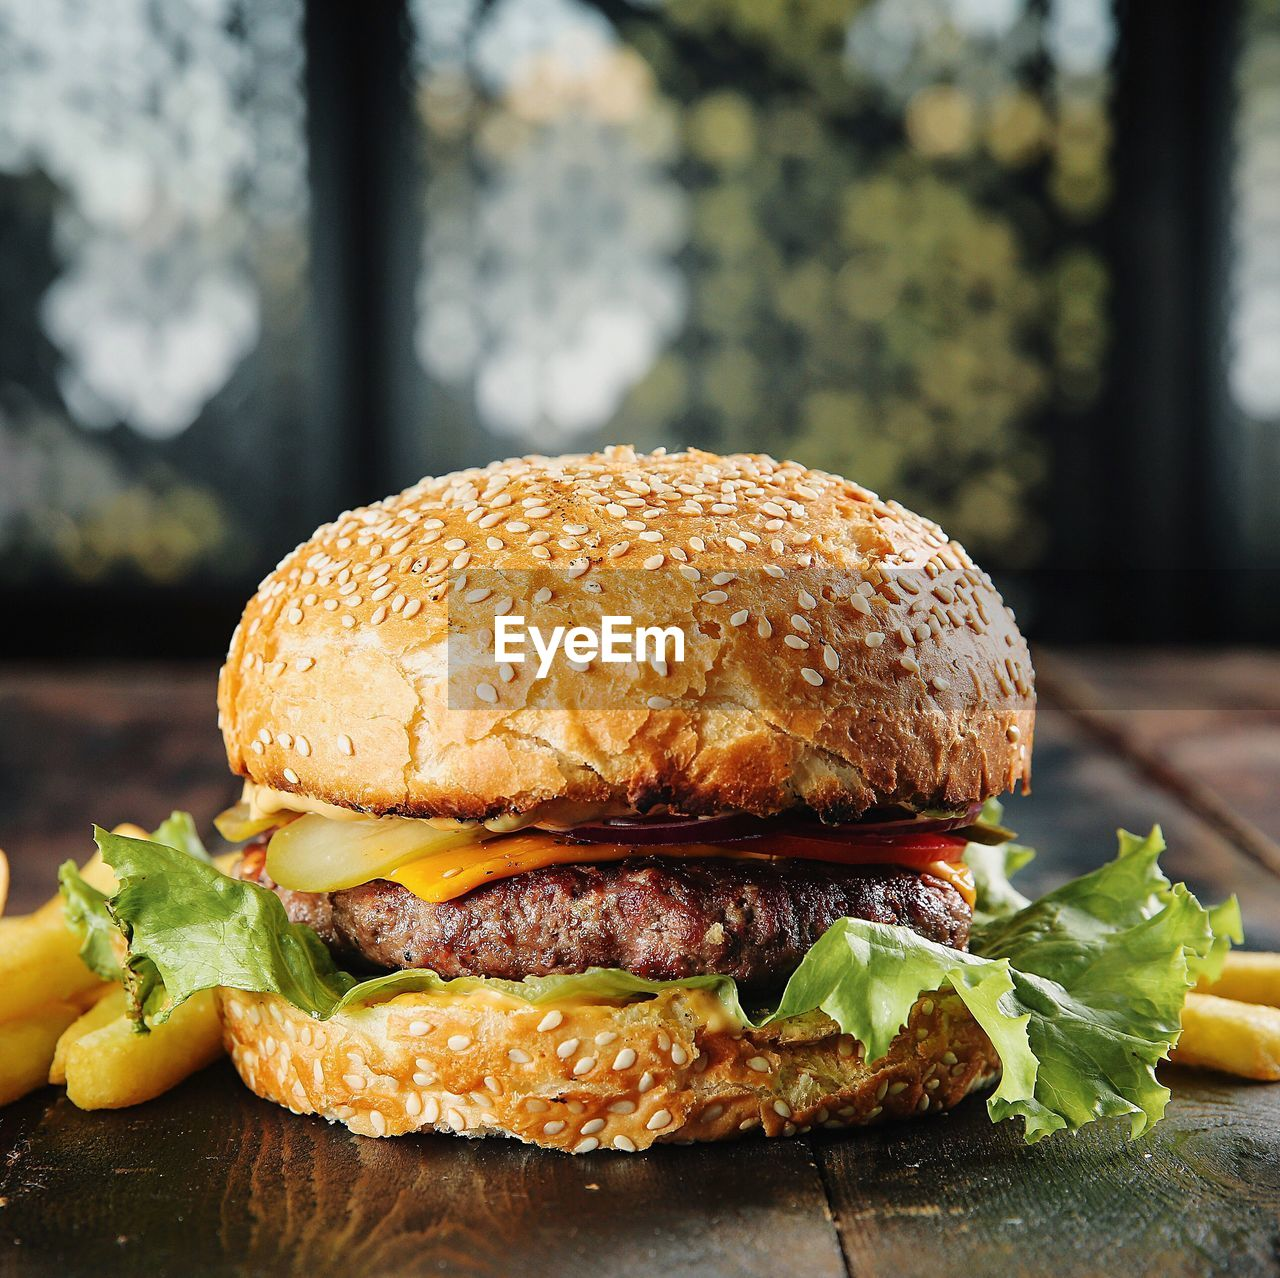 fast food, burger, unhealthy eating, sandwich, food and drink, freshness, ready-to-eat, hamburger, food, close-up, bread, focus on foreground, bun, meat, sesame, no people, vegetable, seed, table, lettuce, take out food, cheeseburger, snack, temptation